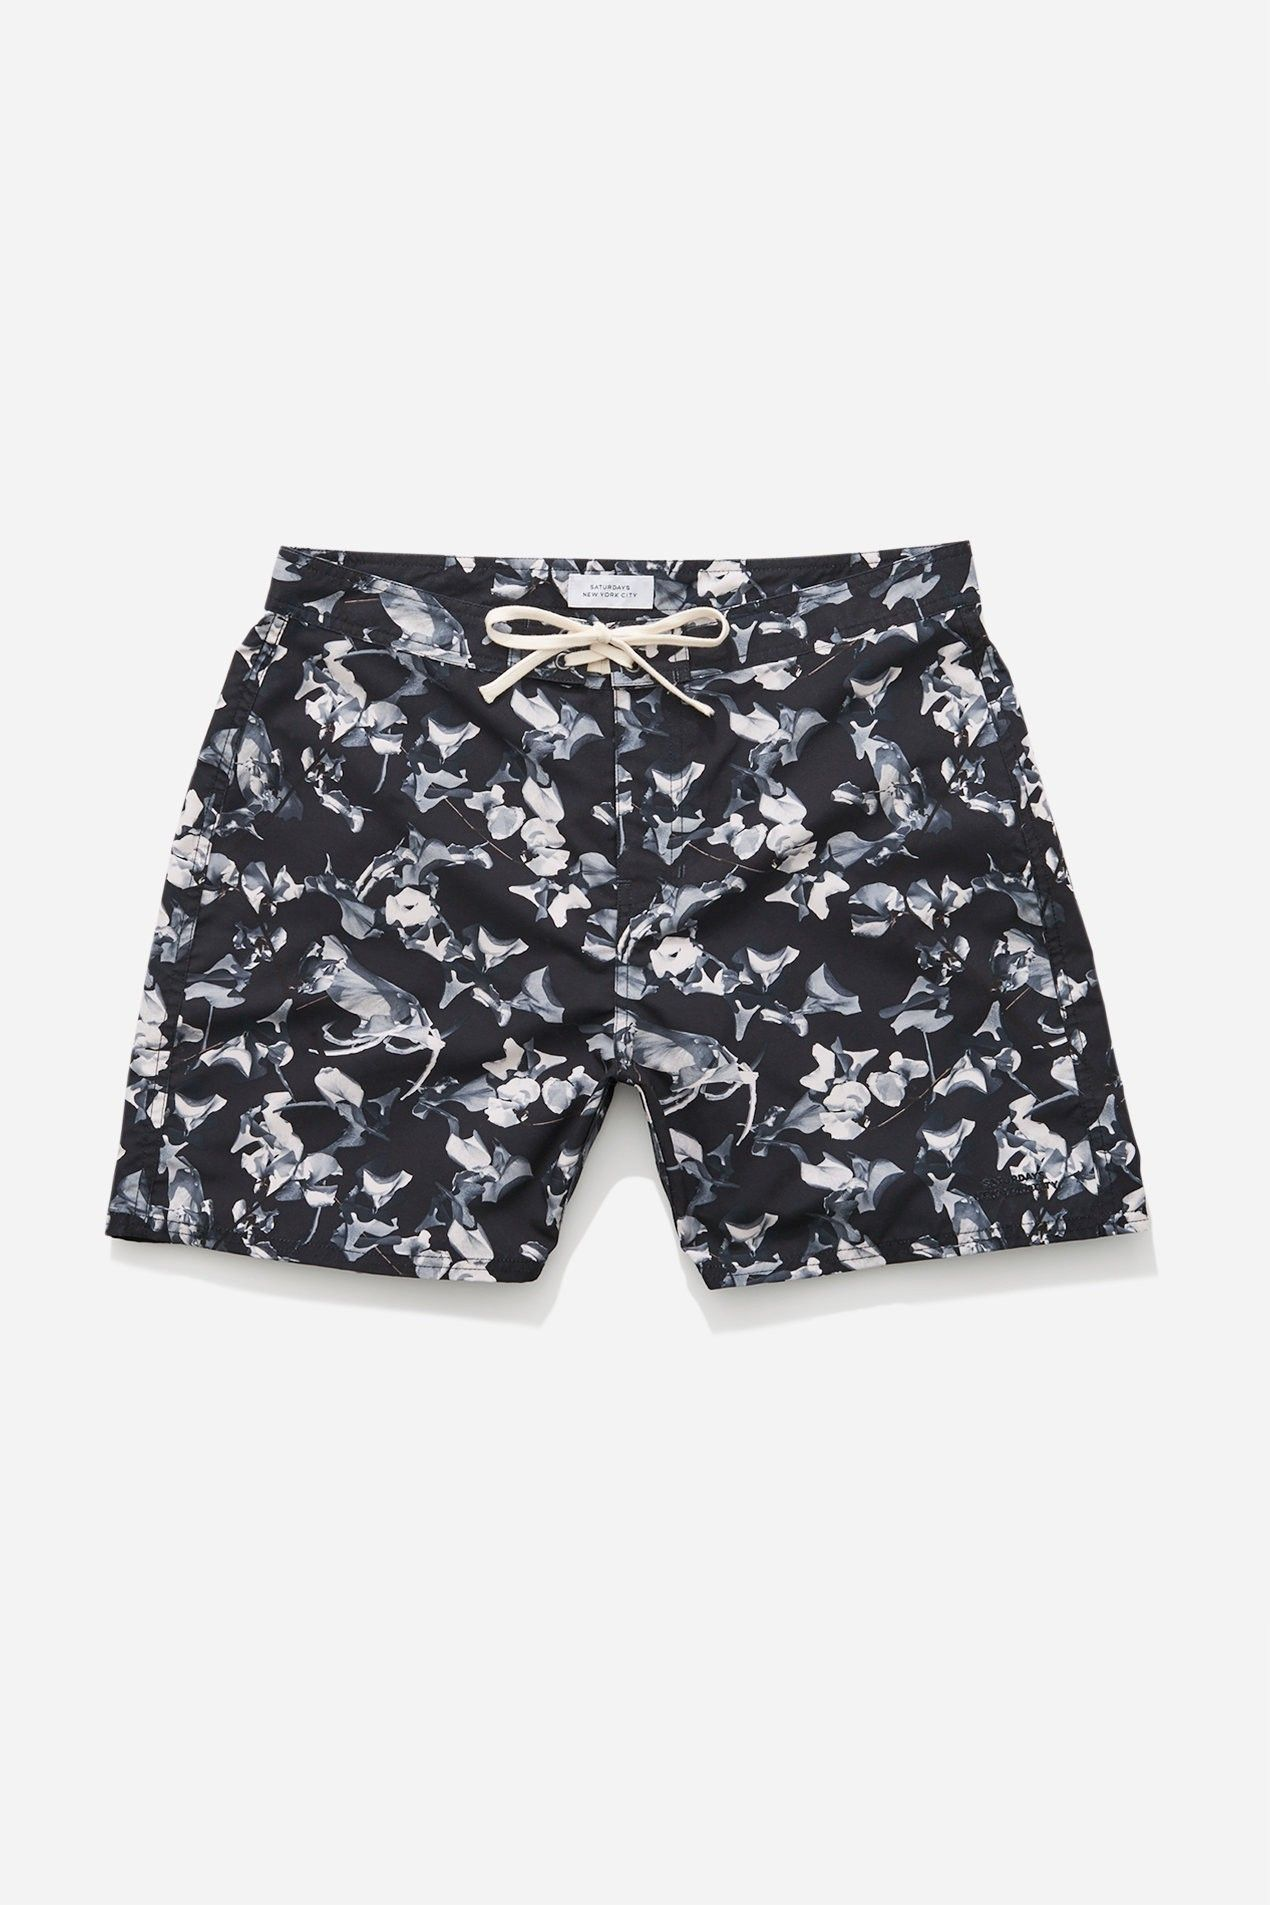 6815506d68 SATURDAYS SURF NYC Colin Petals Board Shorts - Petal Print.  #saturdayssurfnyc #cloth #